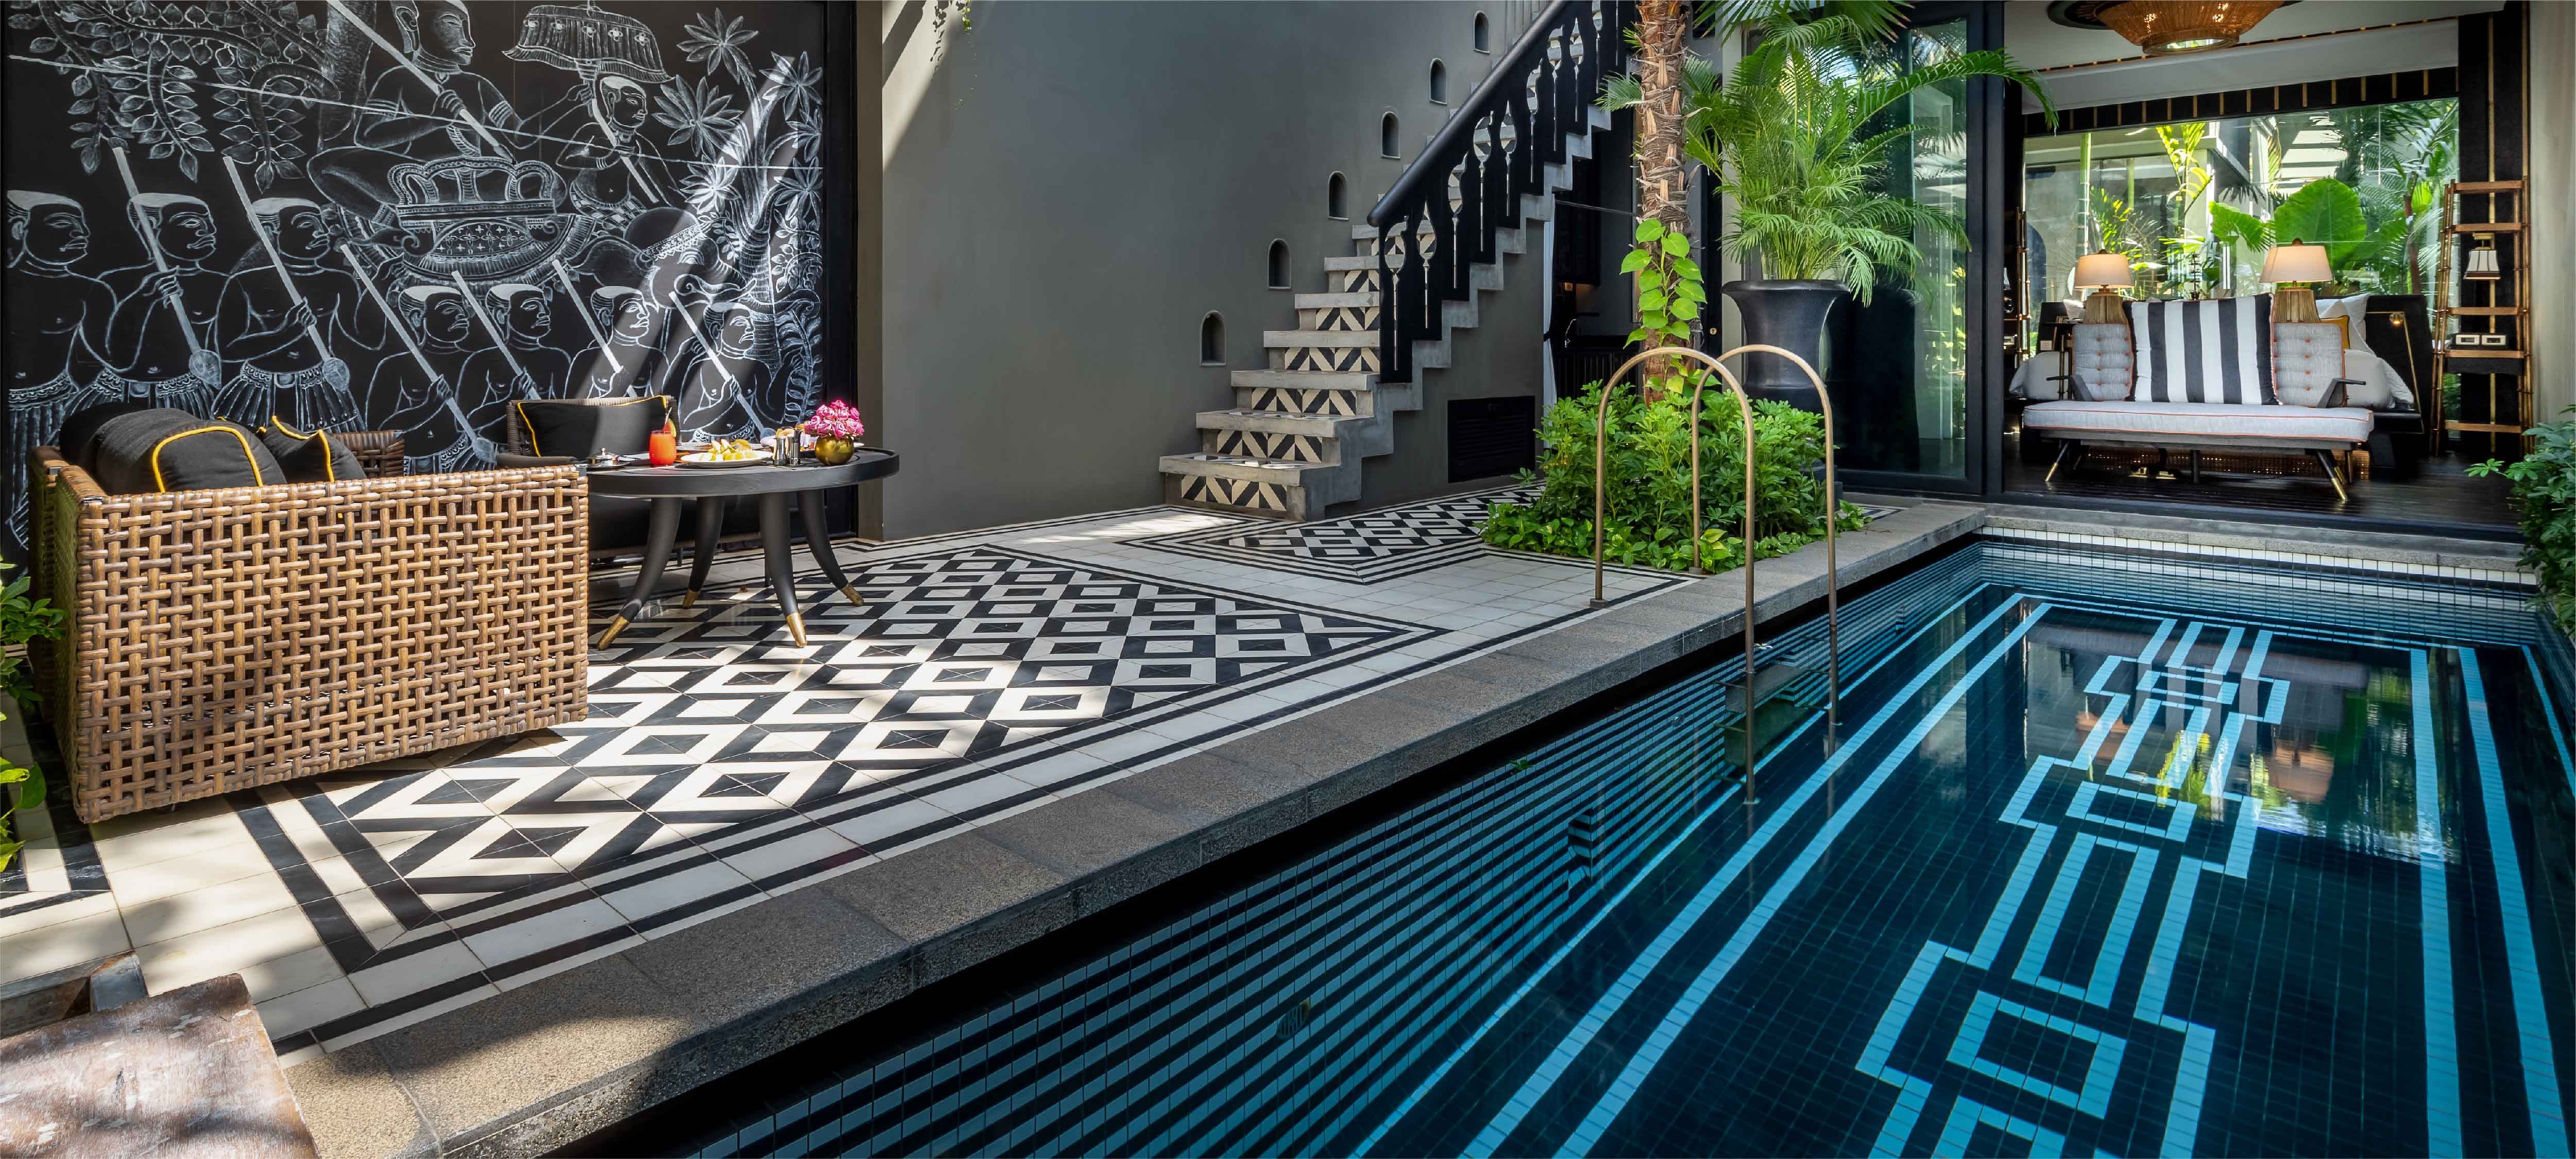 Bensley Collection - Shinta Mani Siem Reap